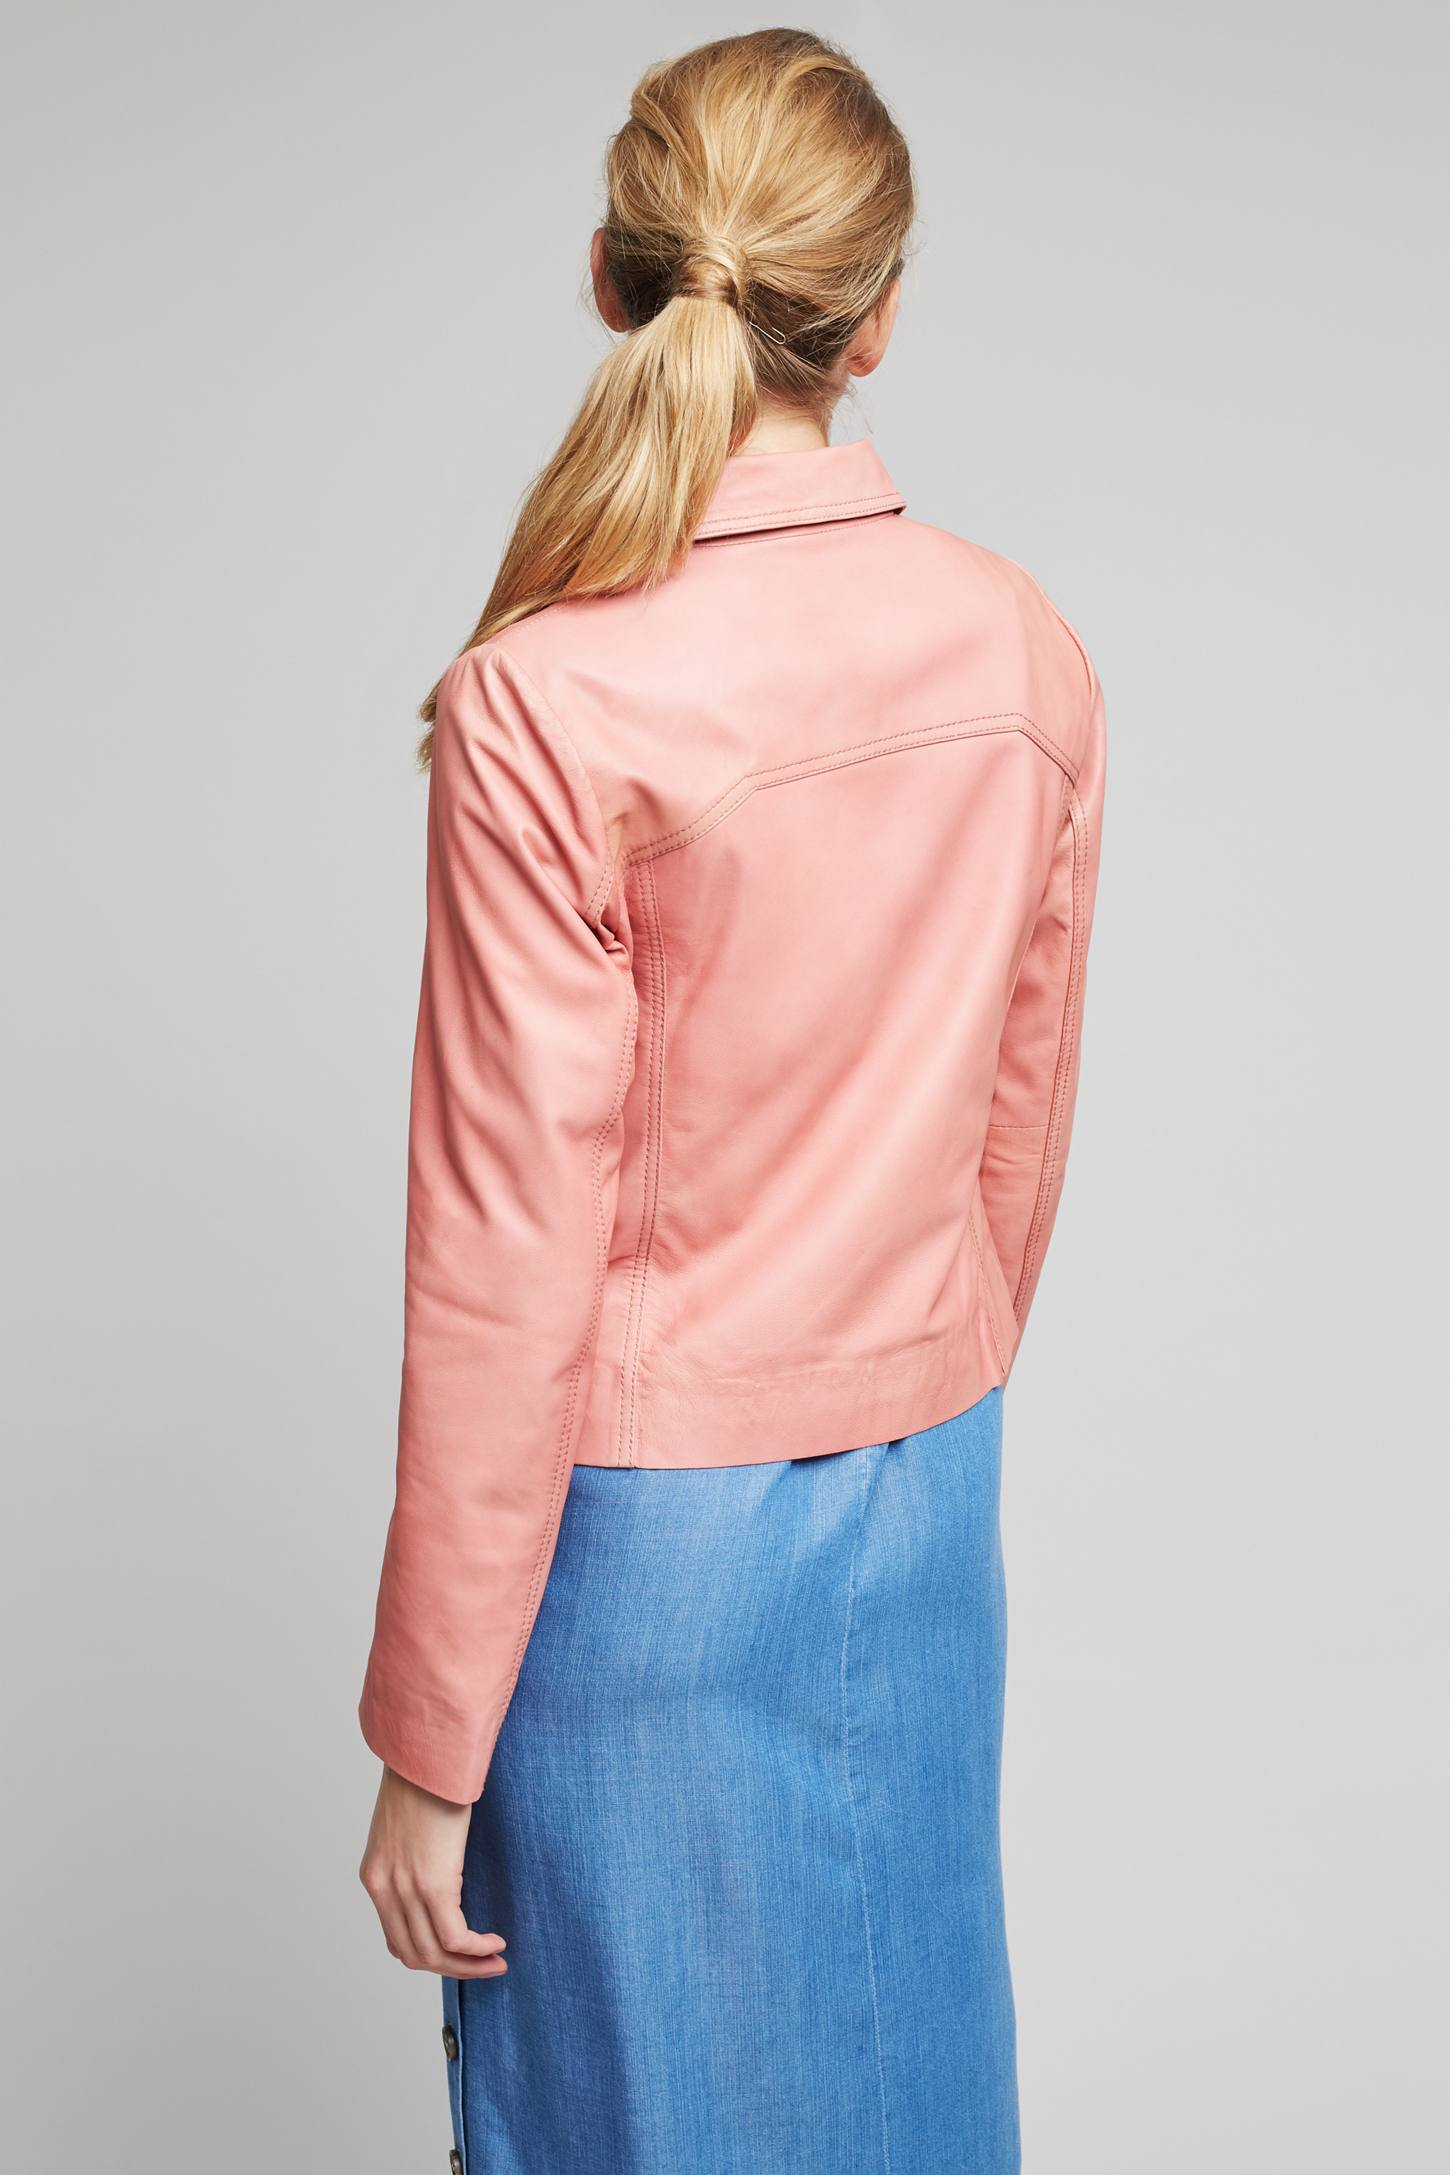 Slide View: 4: Courtney Leather Jacket, Pink